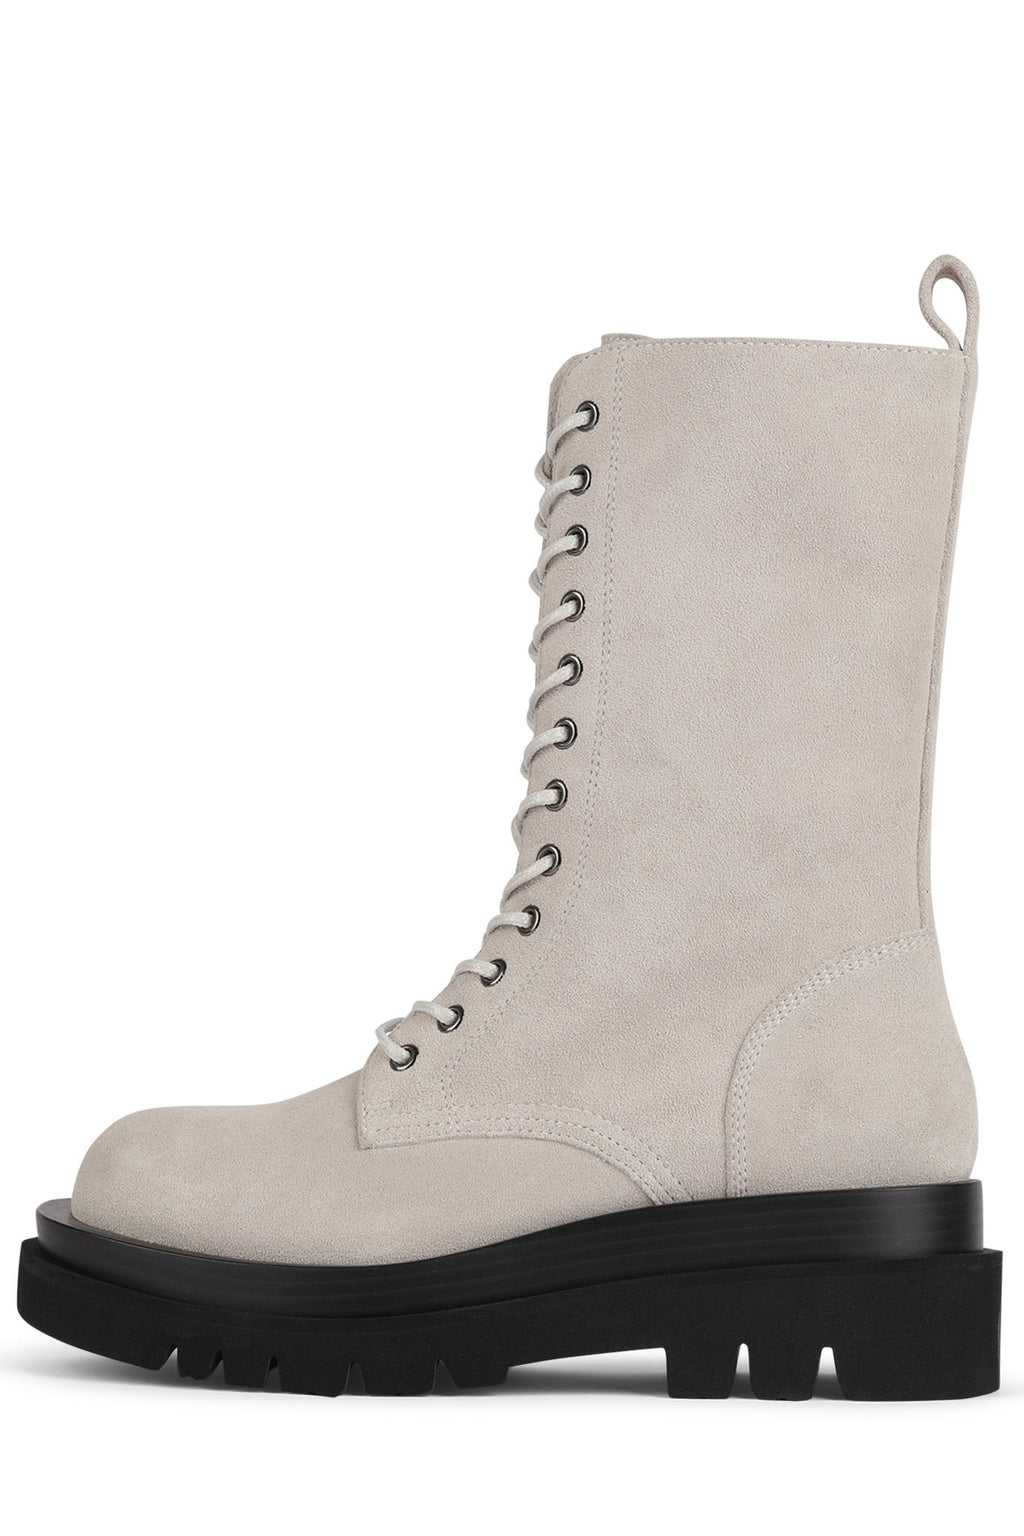 DIABOL-MID Mid-Calf Boot DV White 6